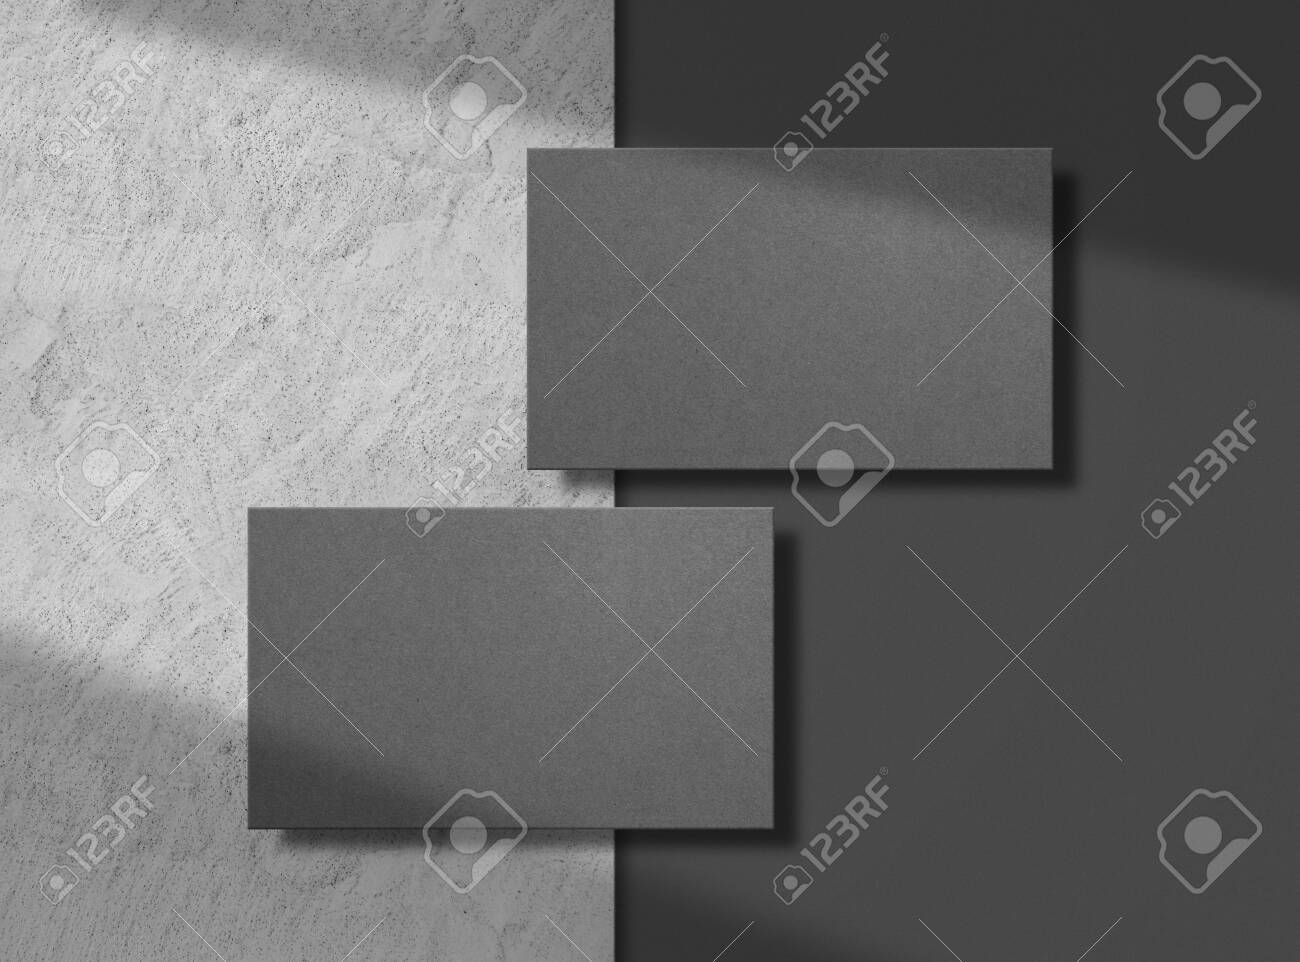 Two black business cards on concrete background. Mock up. Template for corporate identity. Empty objects to place your design. Top view. Illustration. - 149594195